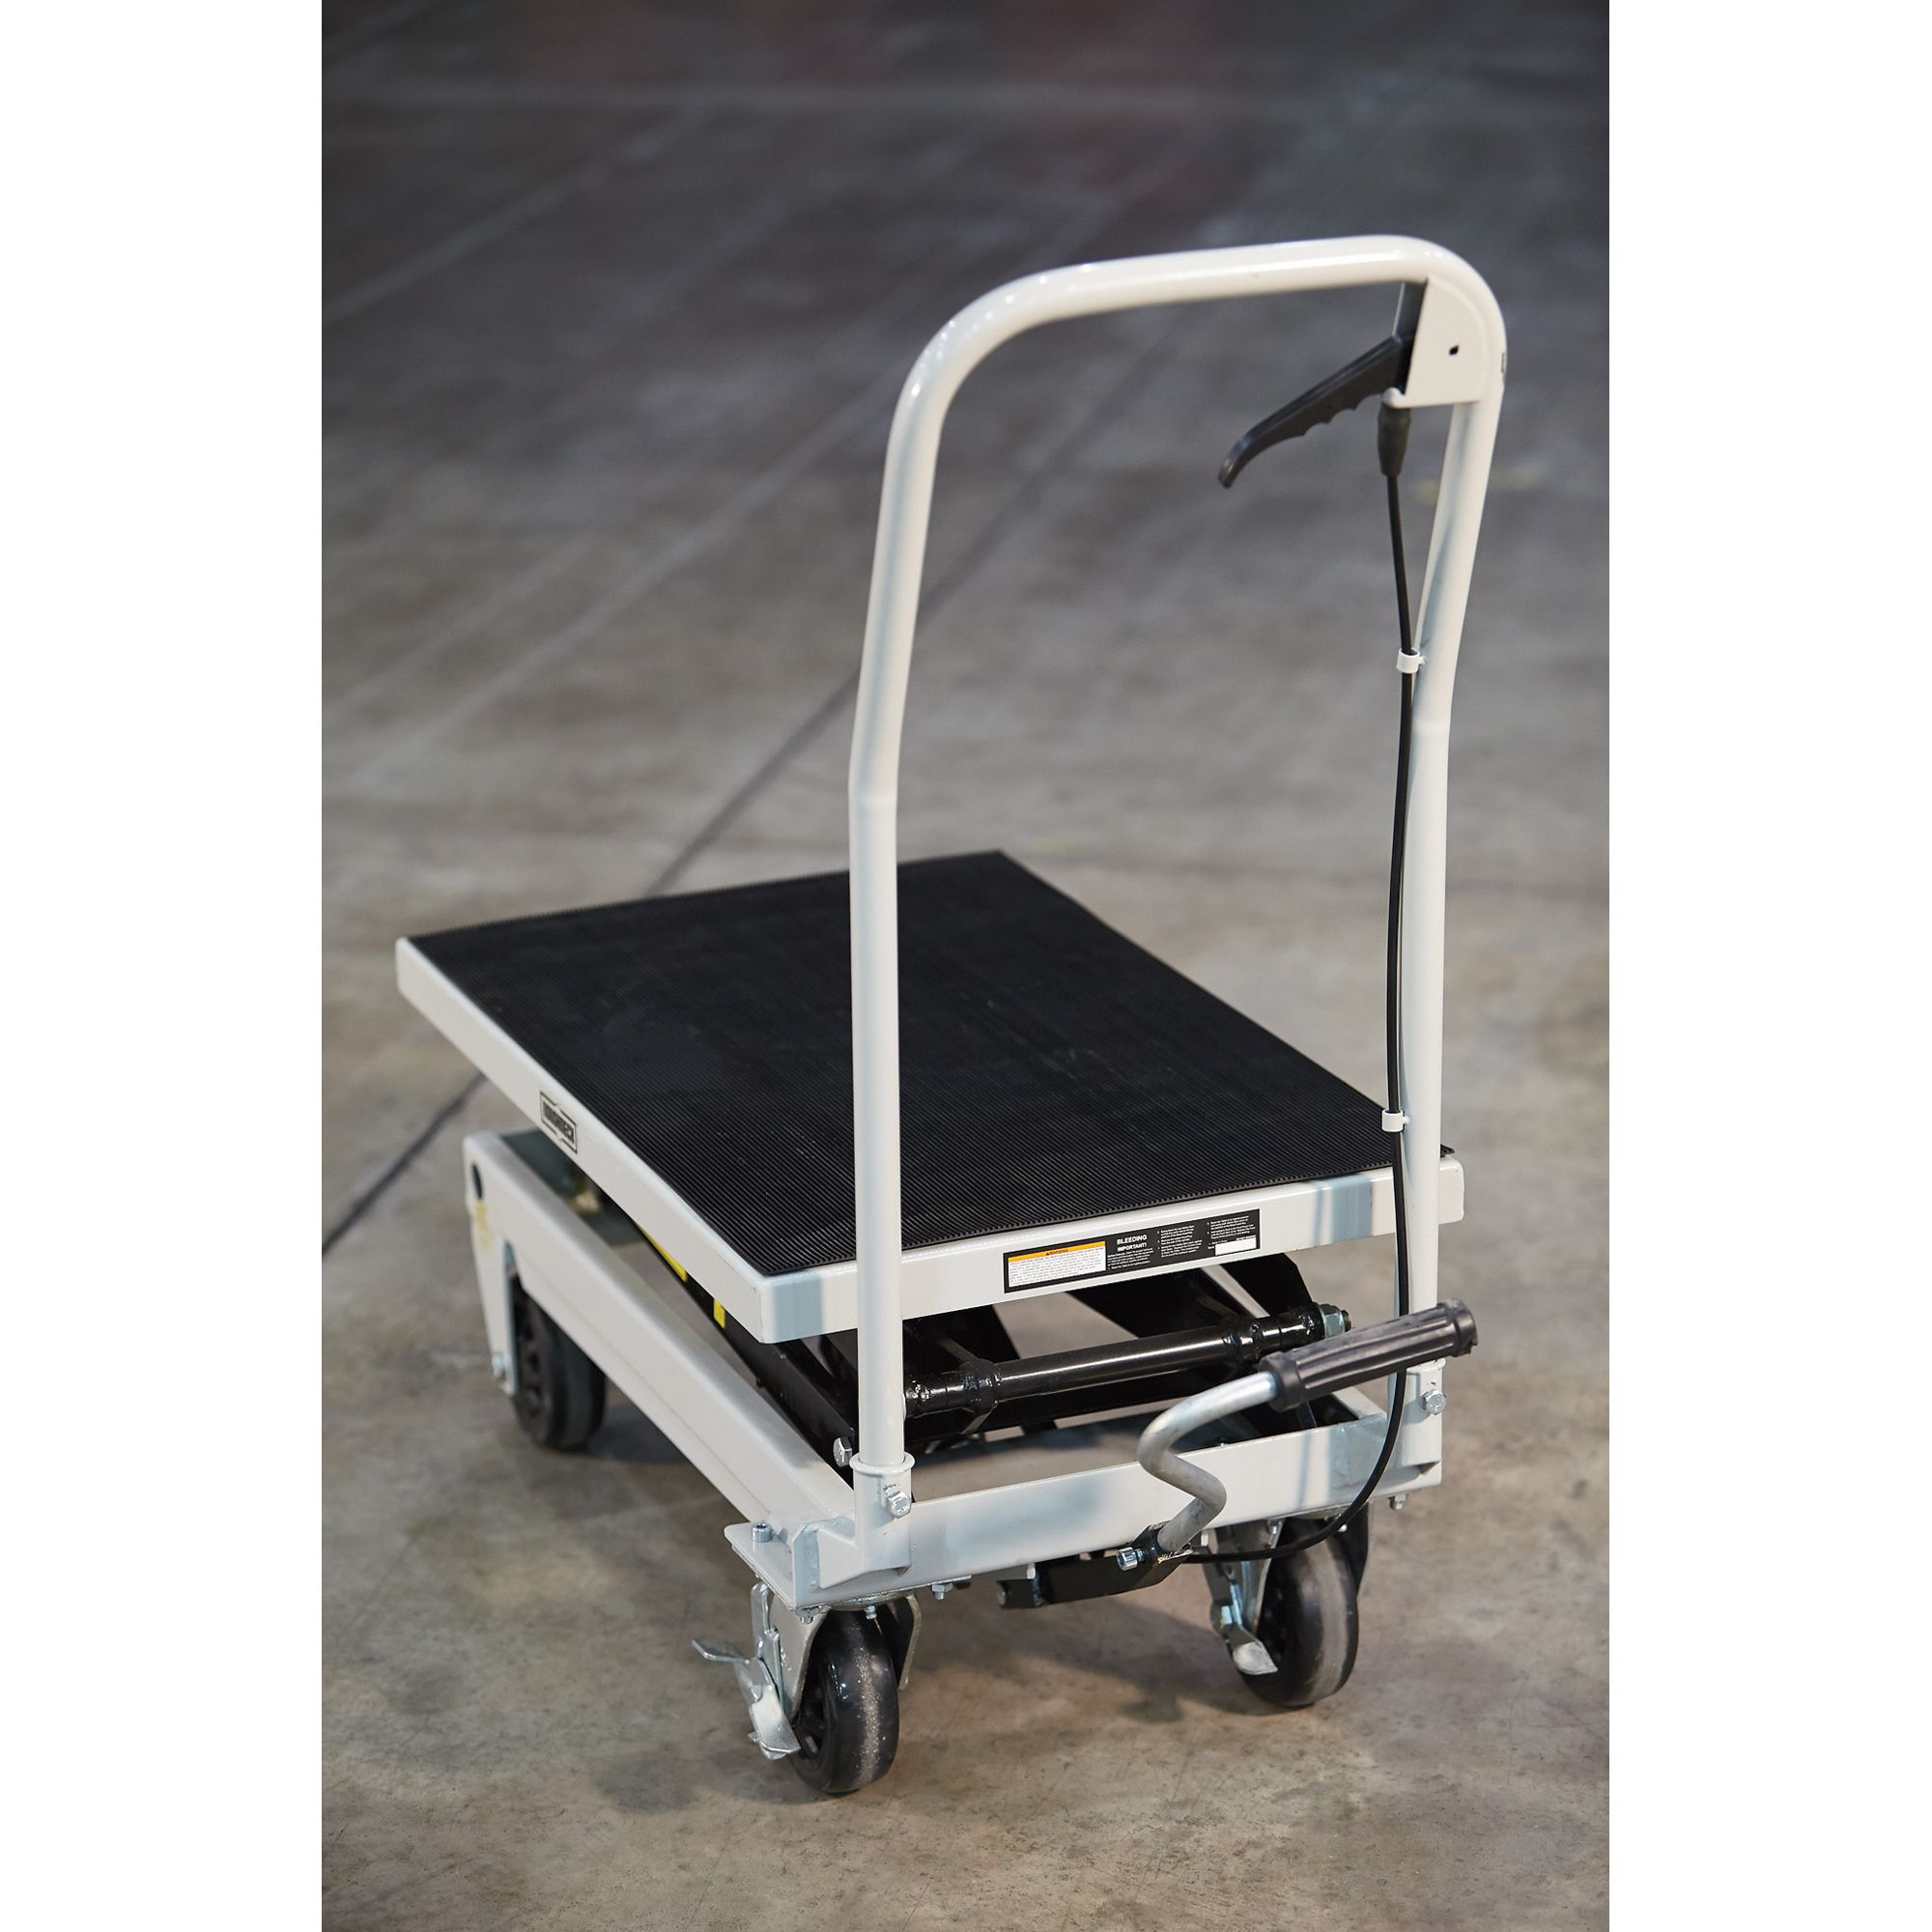 This Roughneck® 2-Speed Rapid Lift XT Lift Table is a hydraulic